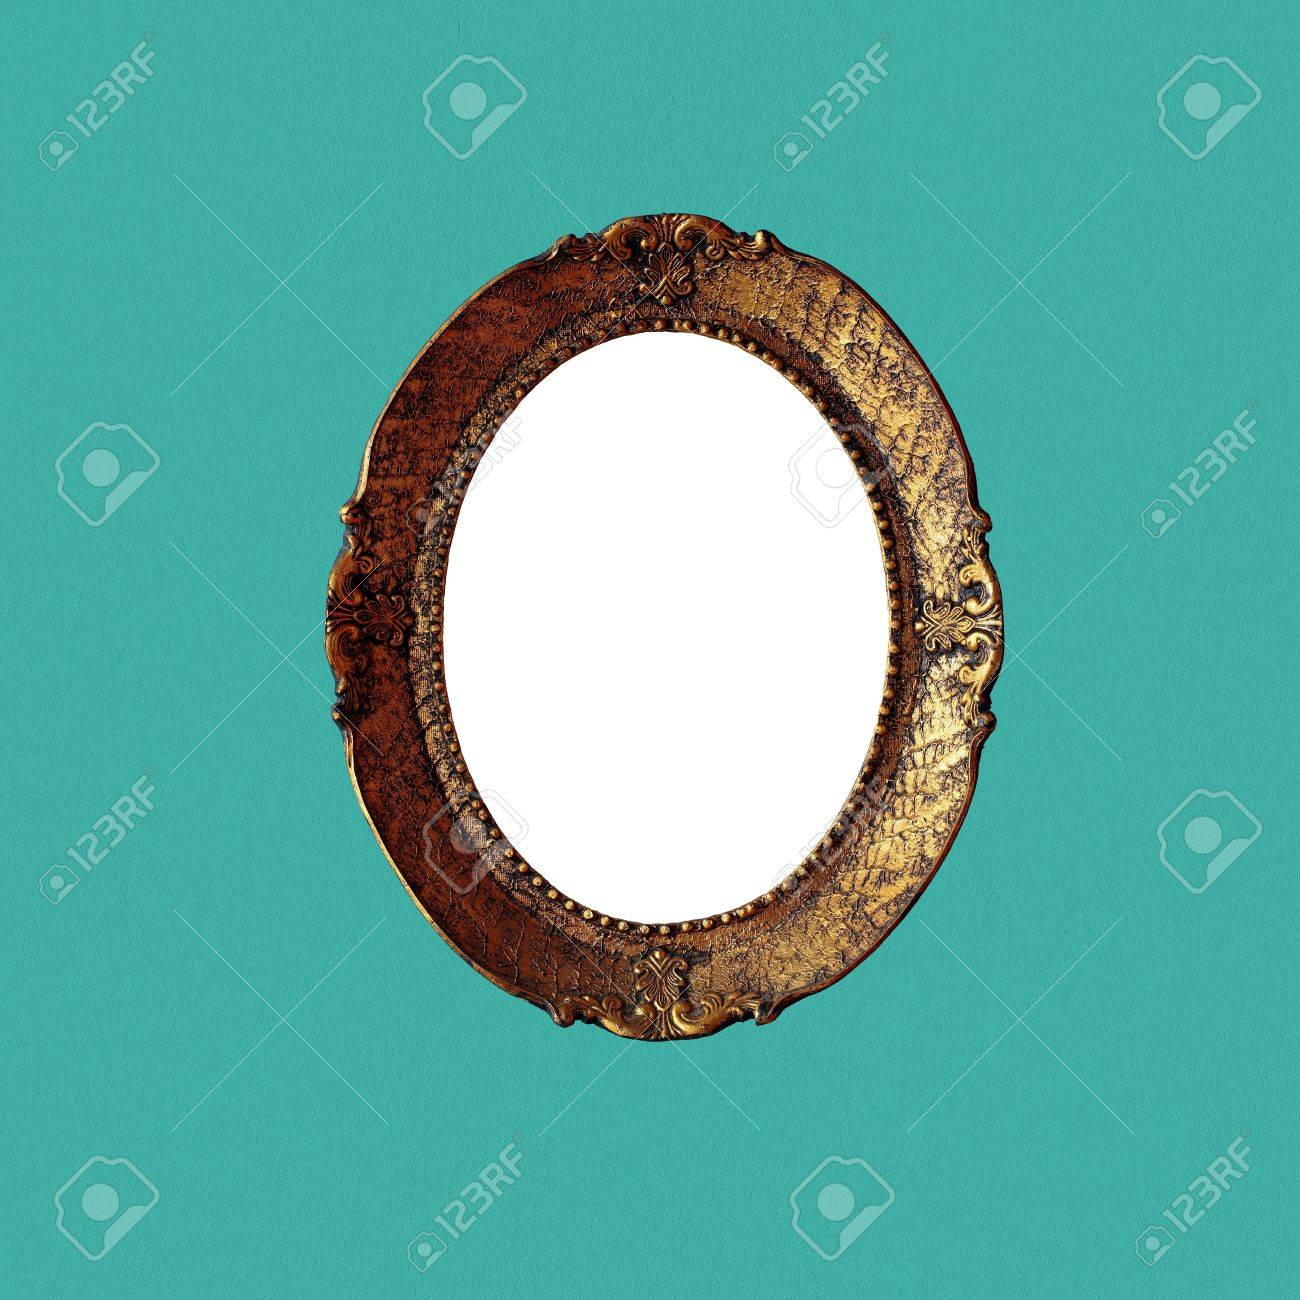 Antique art frame on green wall, with content cutout and without shadows. Included paths for cutting. Stock Photo - 8922436